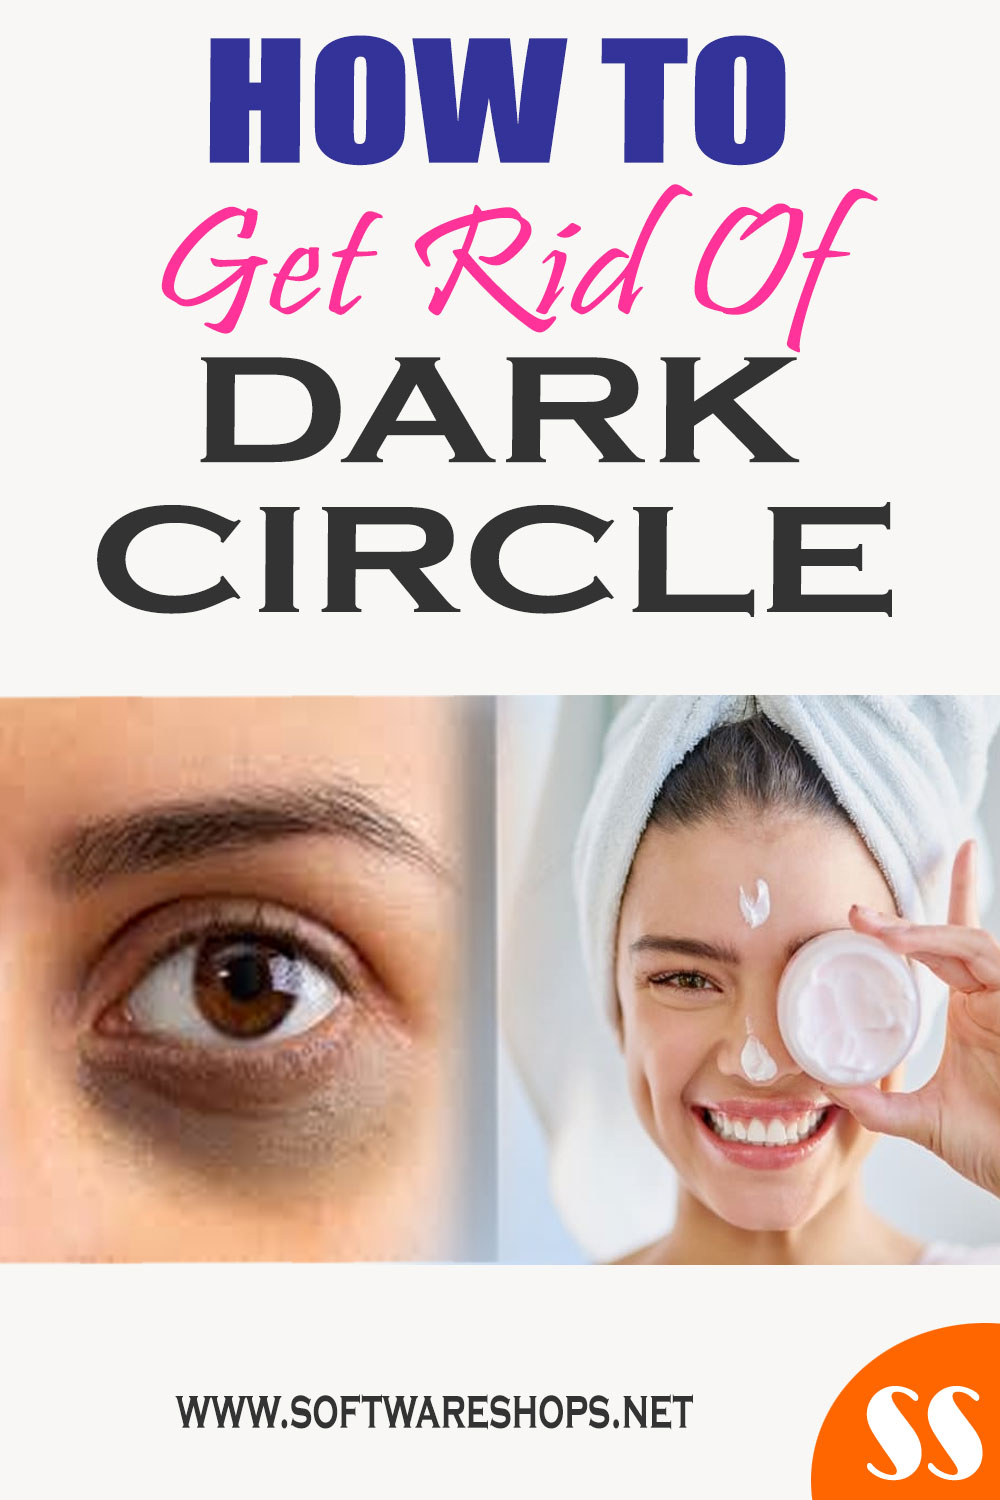 How to get rid of dark circles [skin care tips]